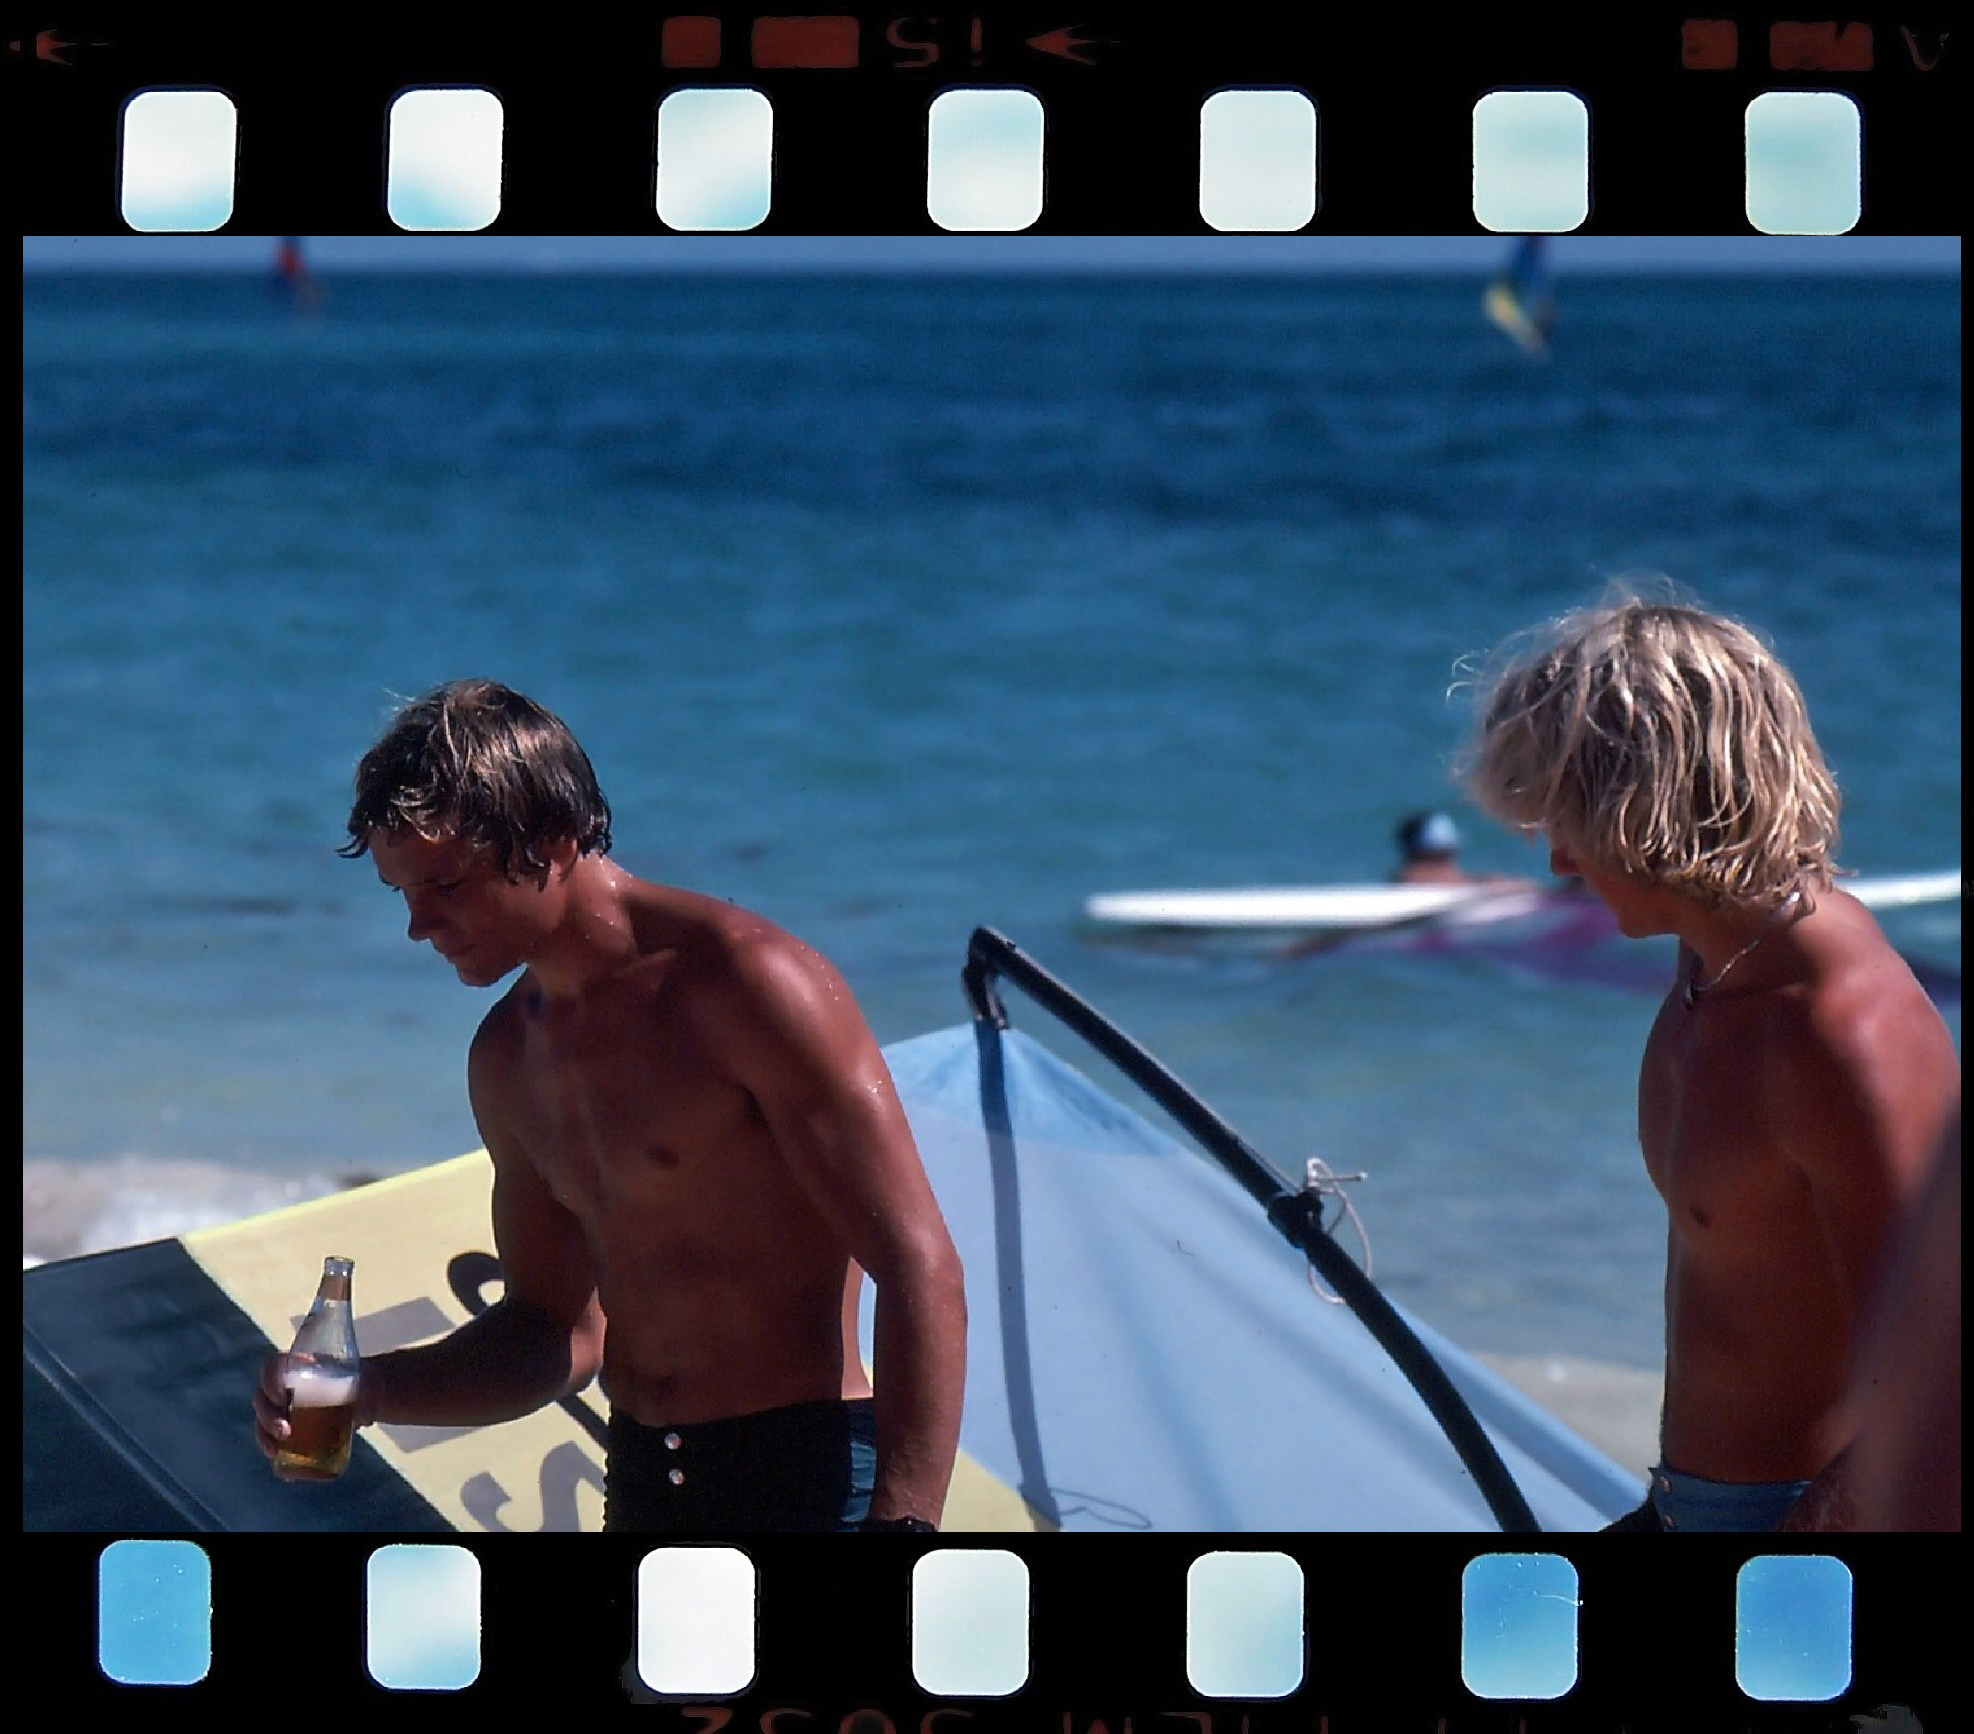 120. Mike waltze o Robby Naish 1980